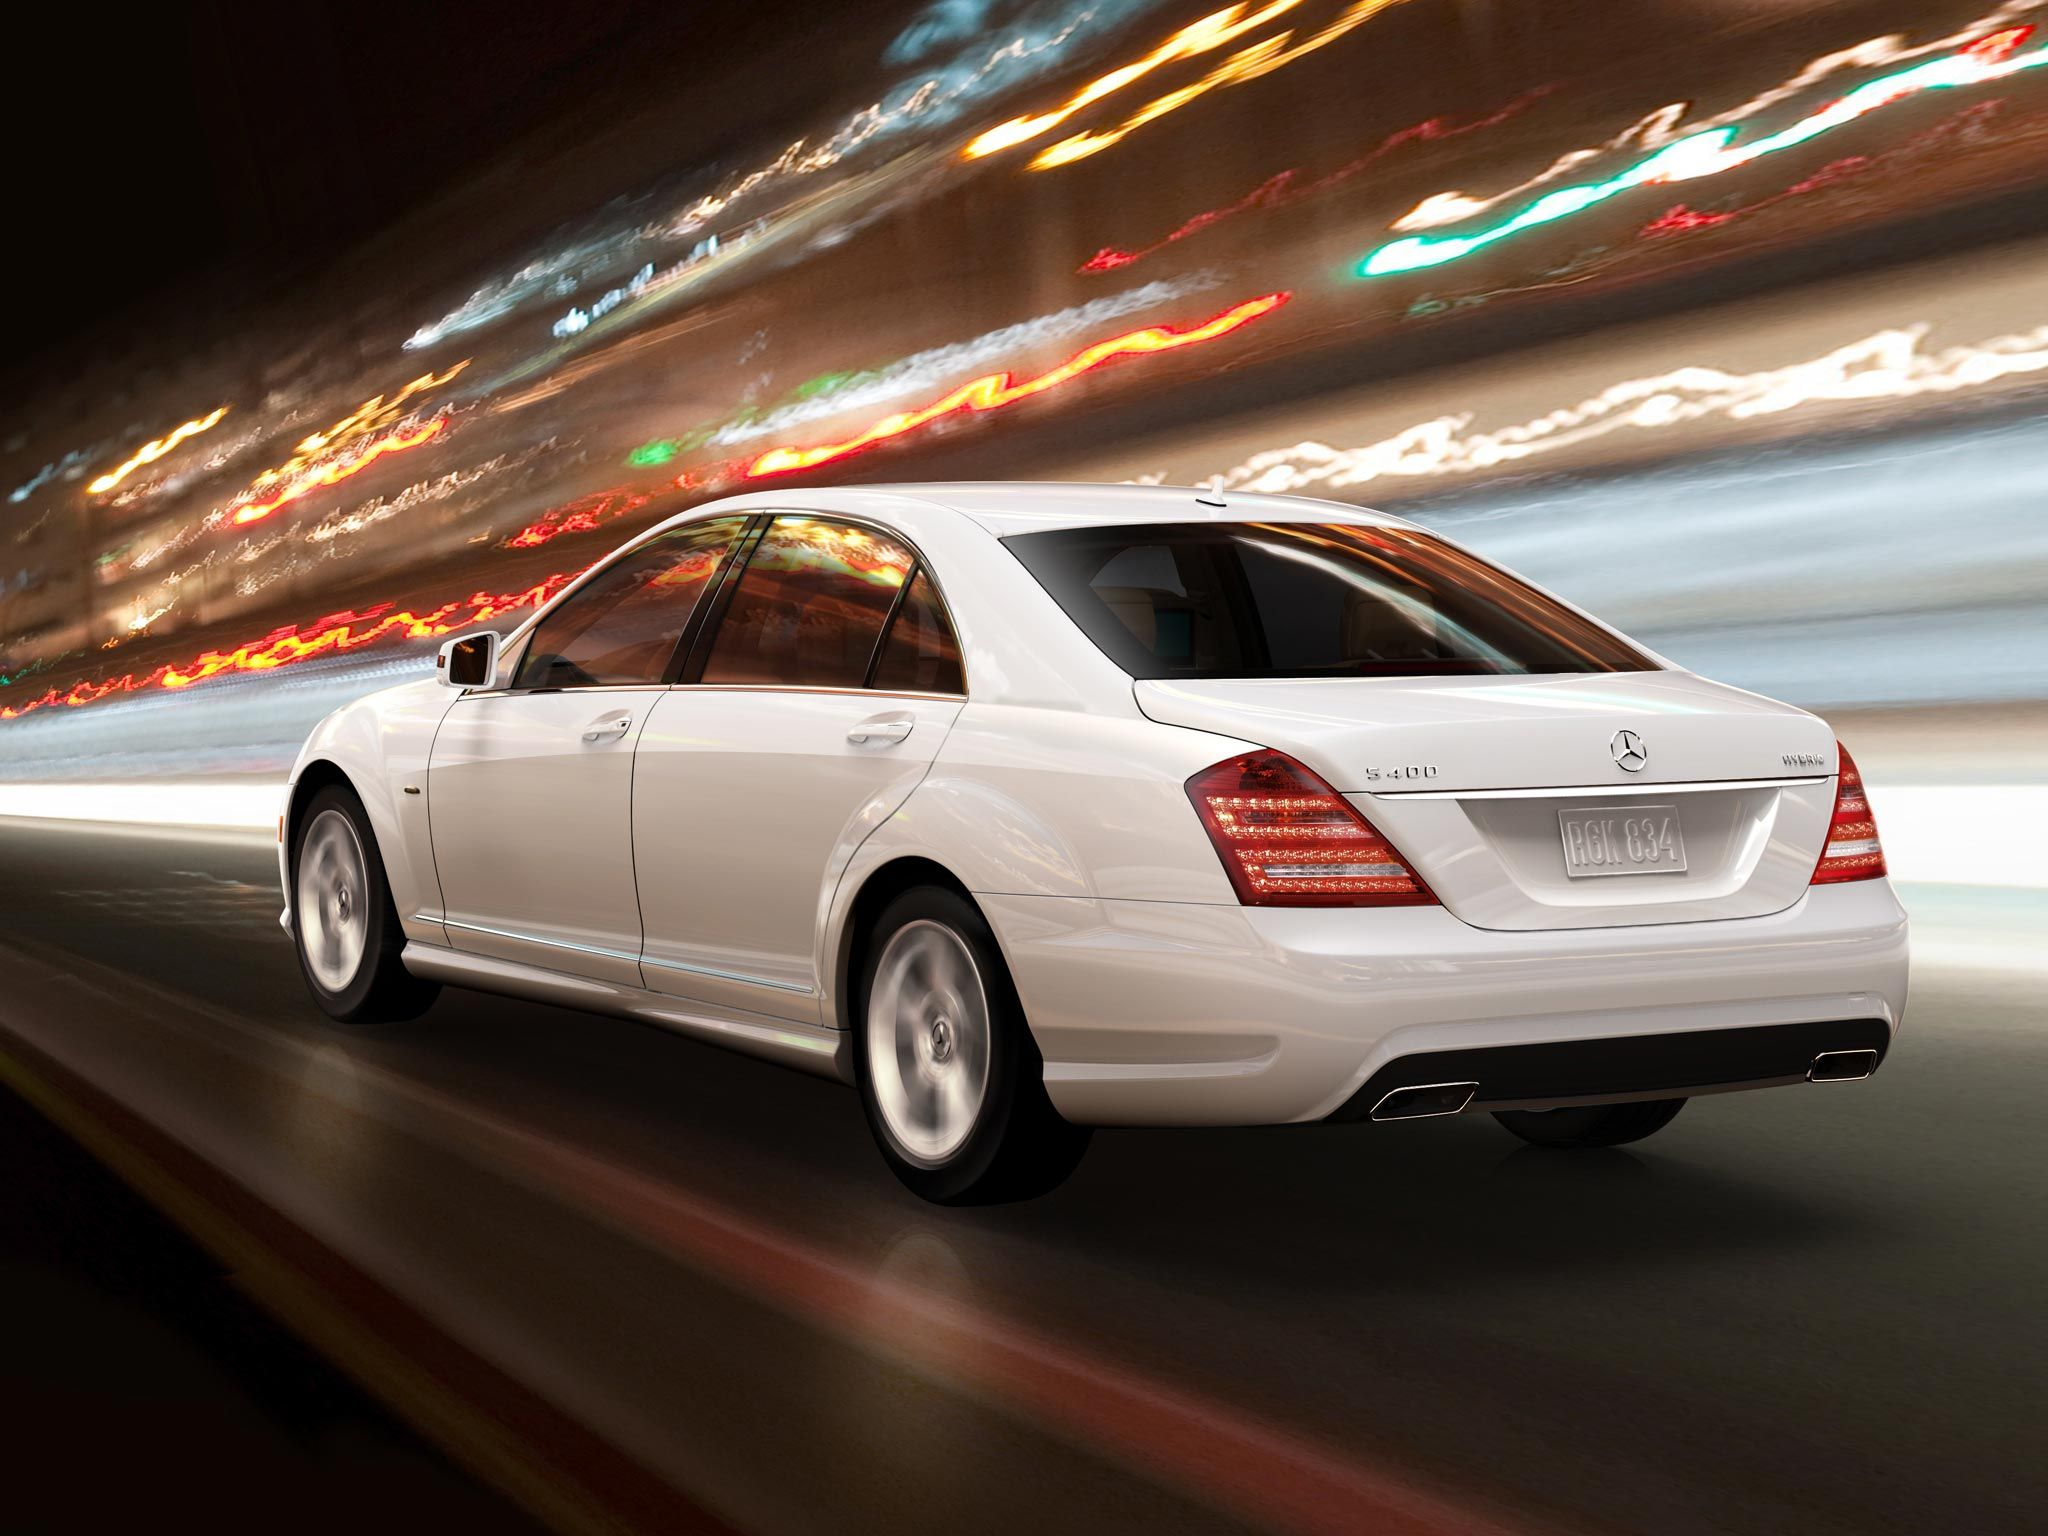 Top 5 Luxurious Eco Friendly Cars Of 2012 Eco Friendly Cars Mercedes Benz Benz